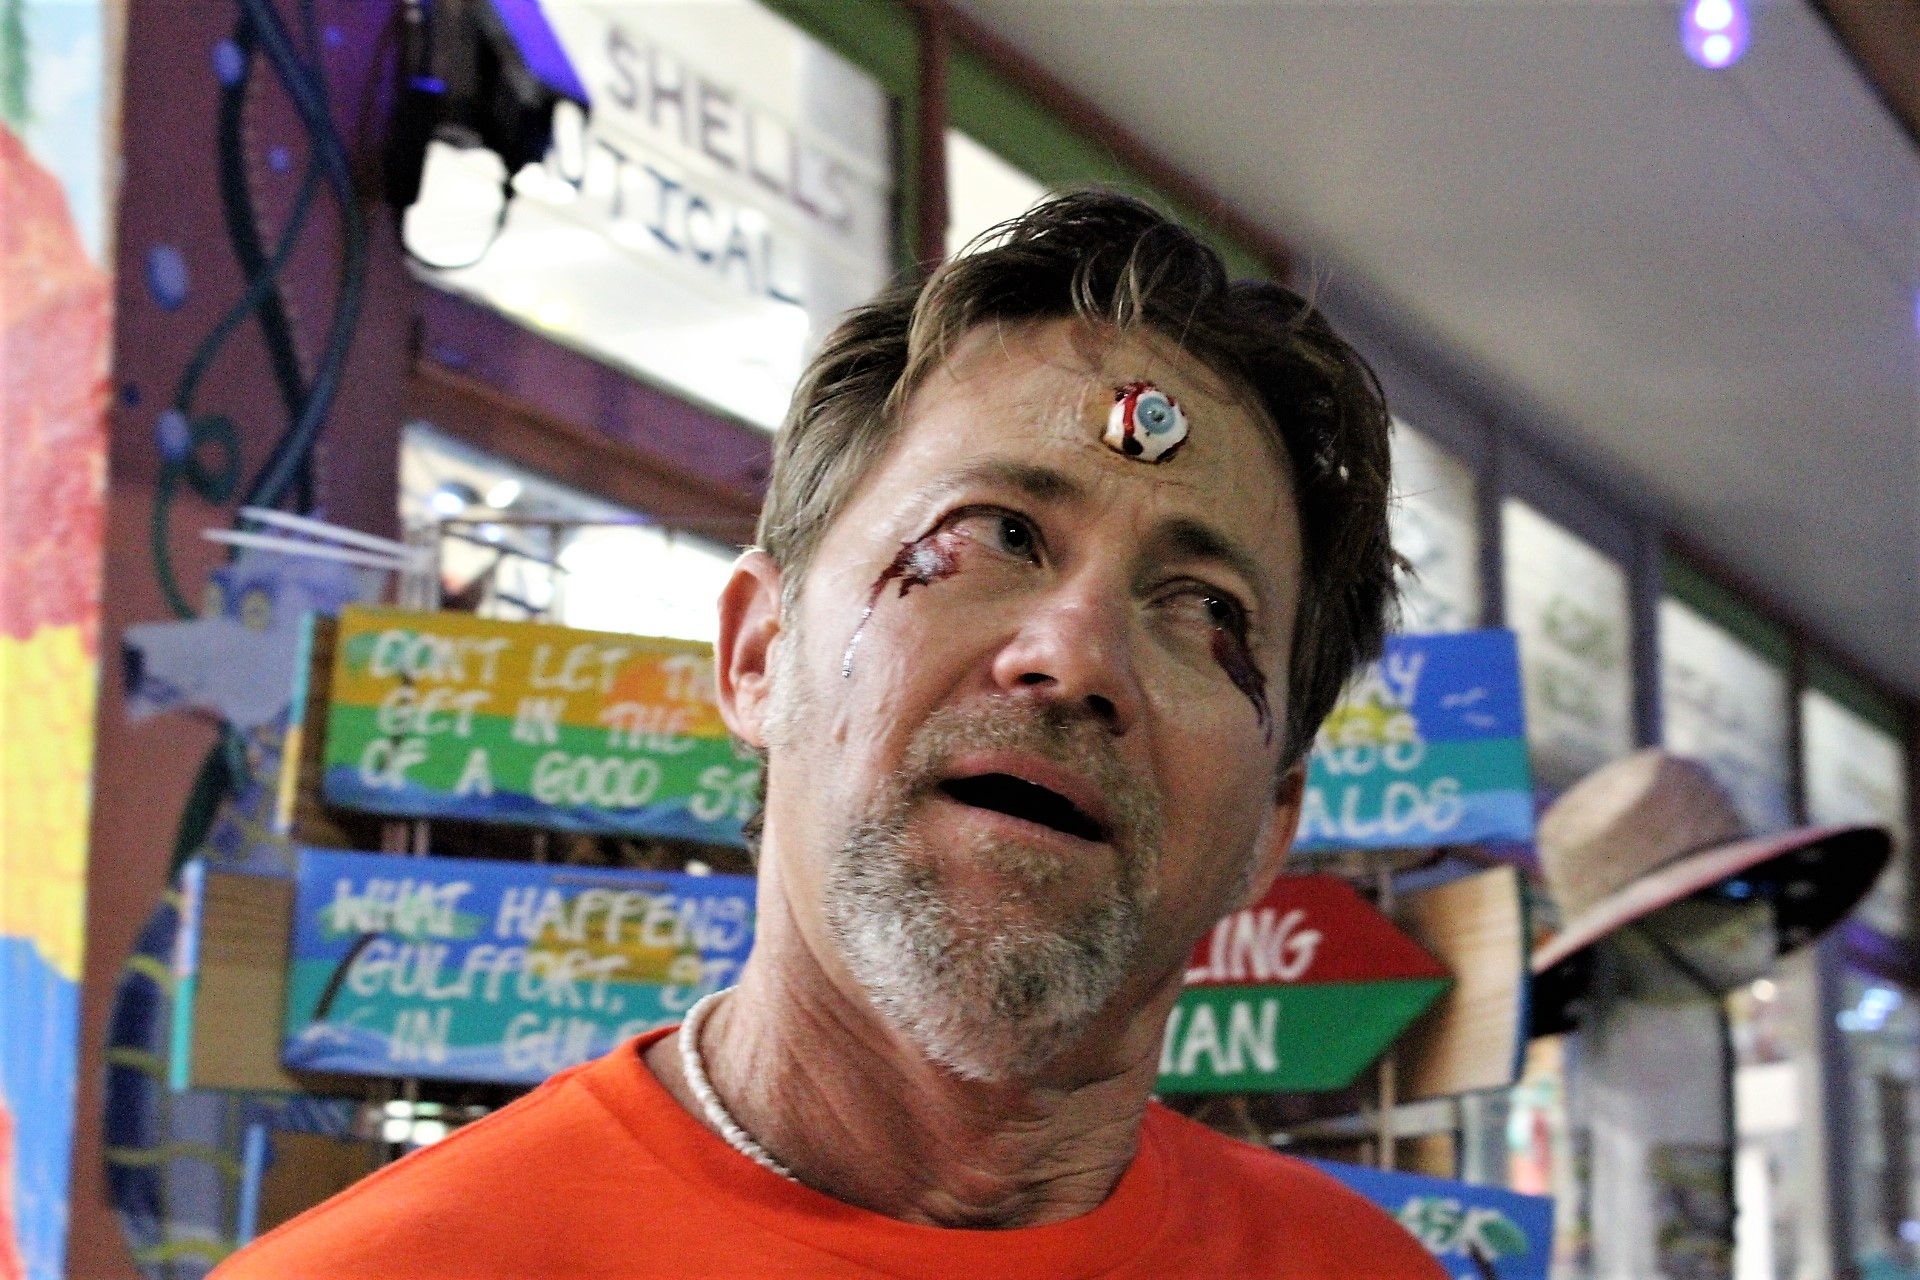 A man in an orange t-shirt with spooky face paint.